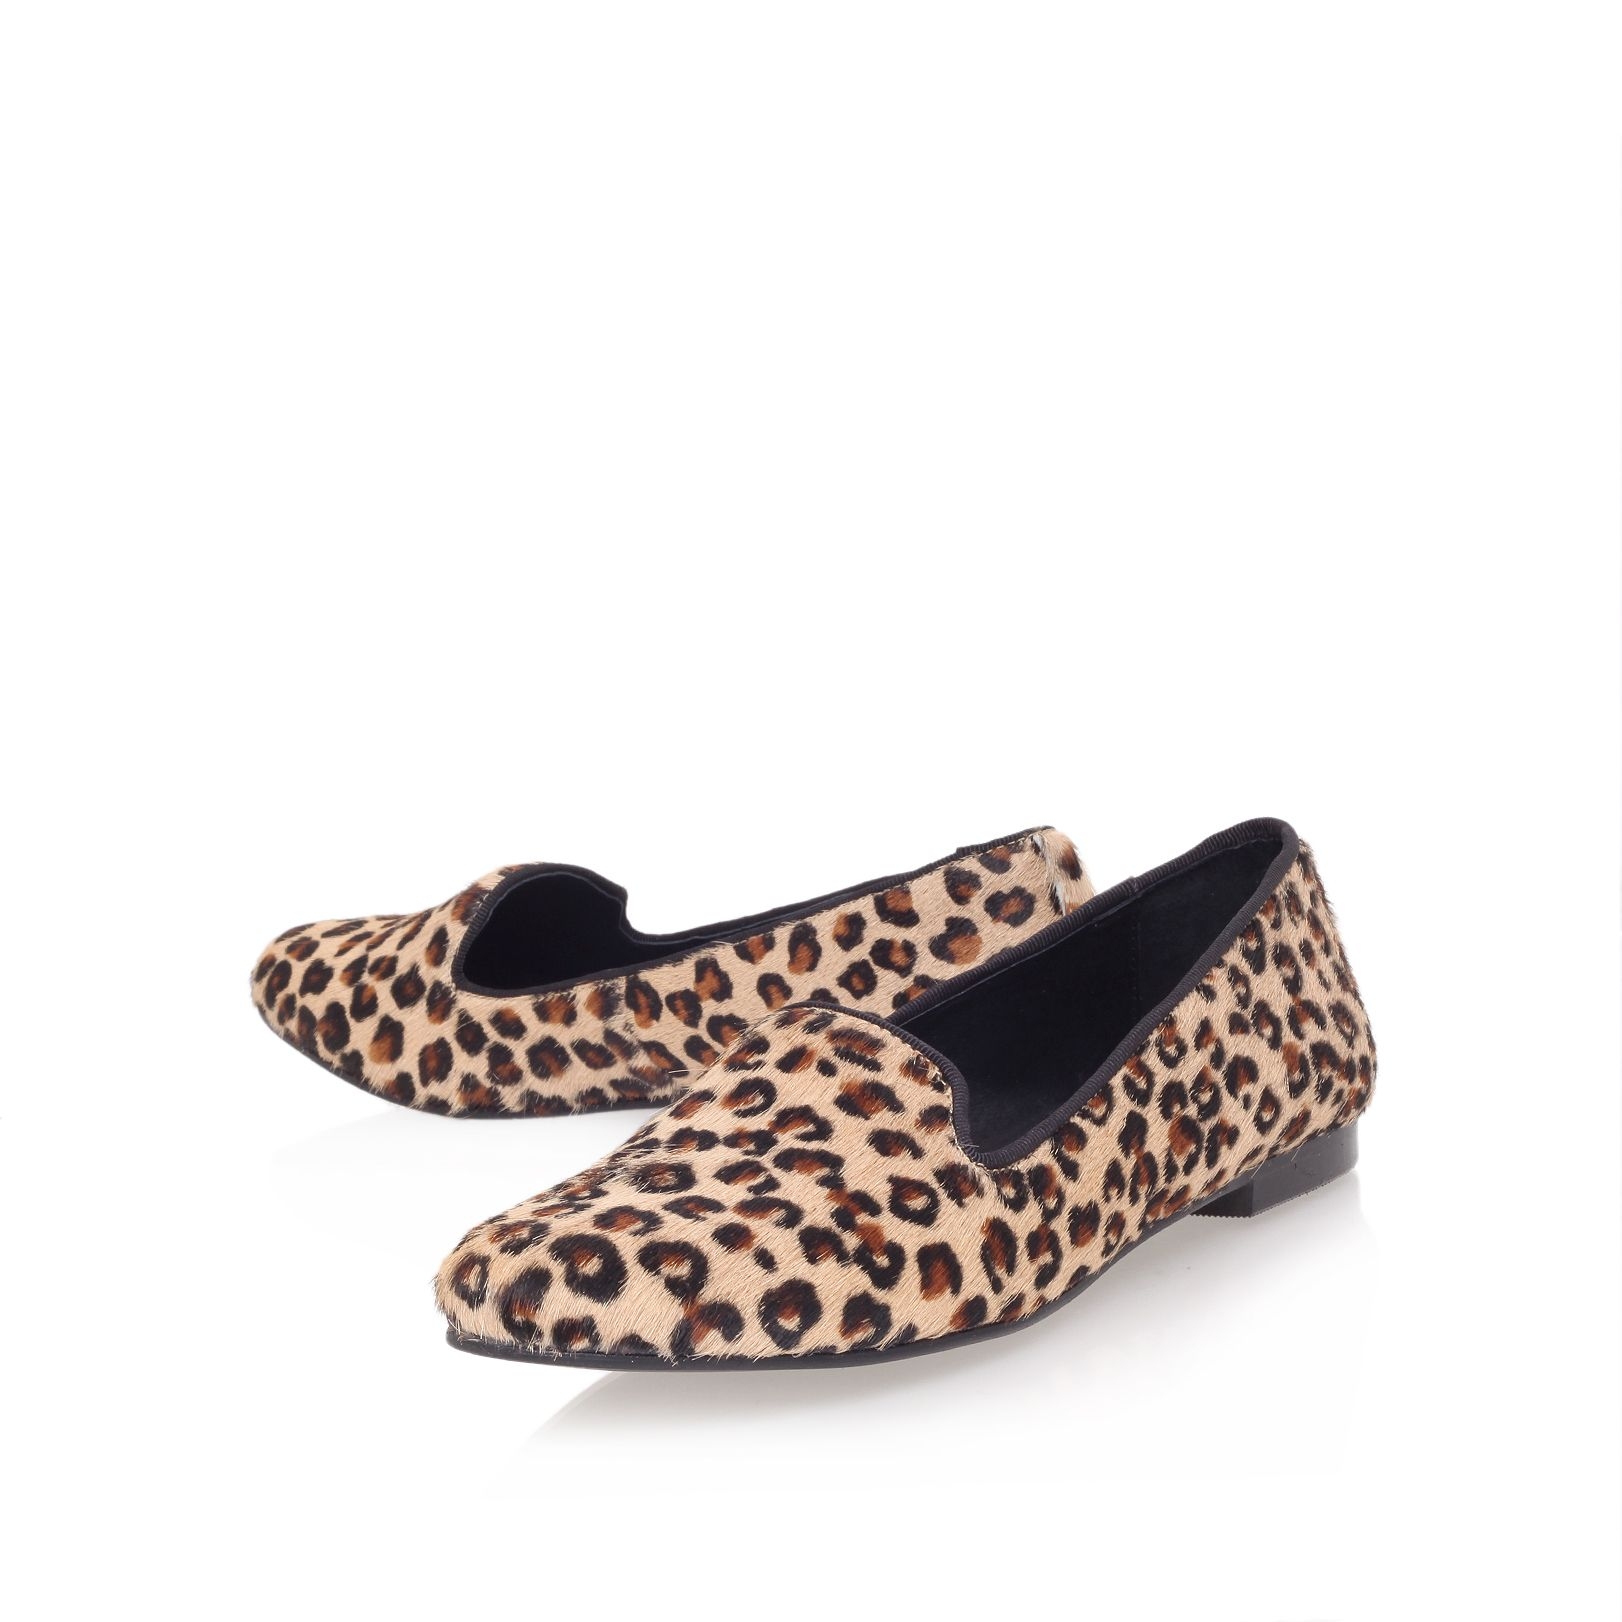 Livvy casual formal slipper